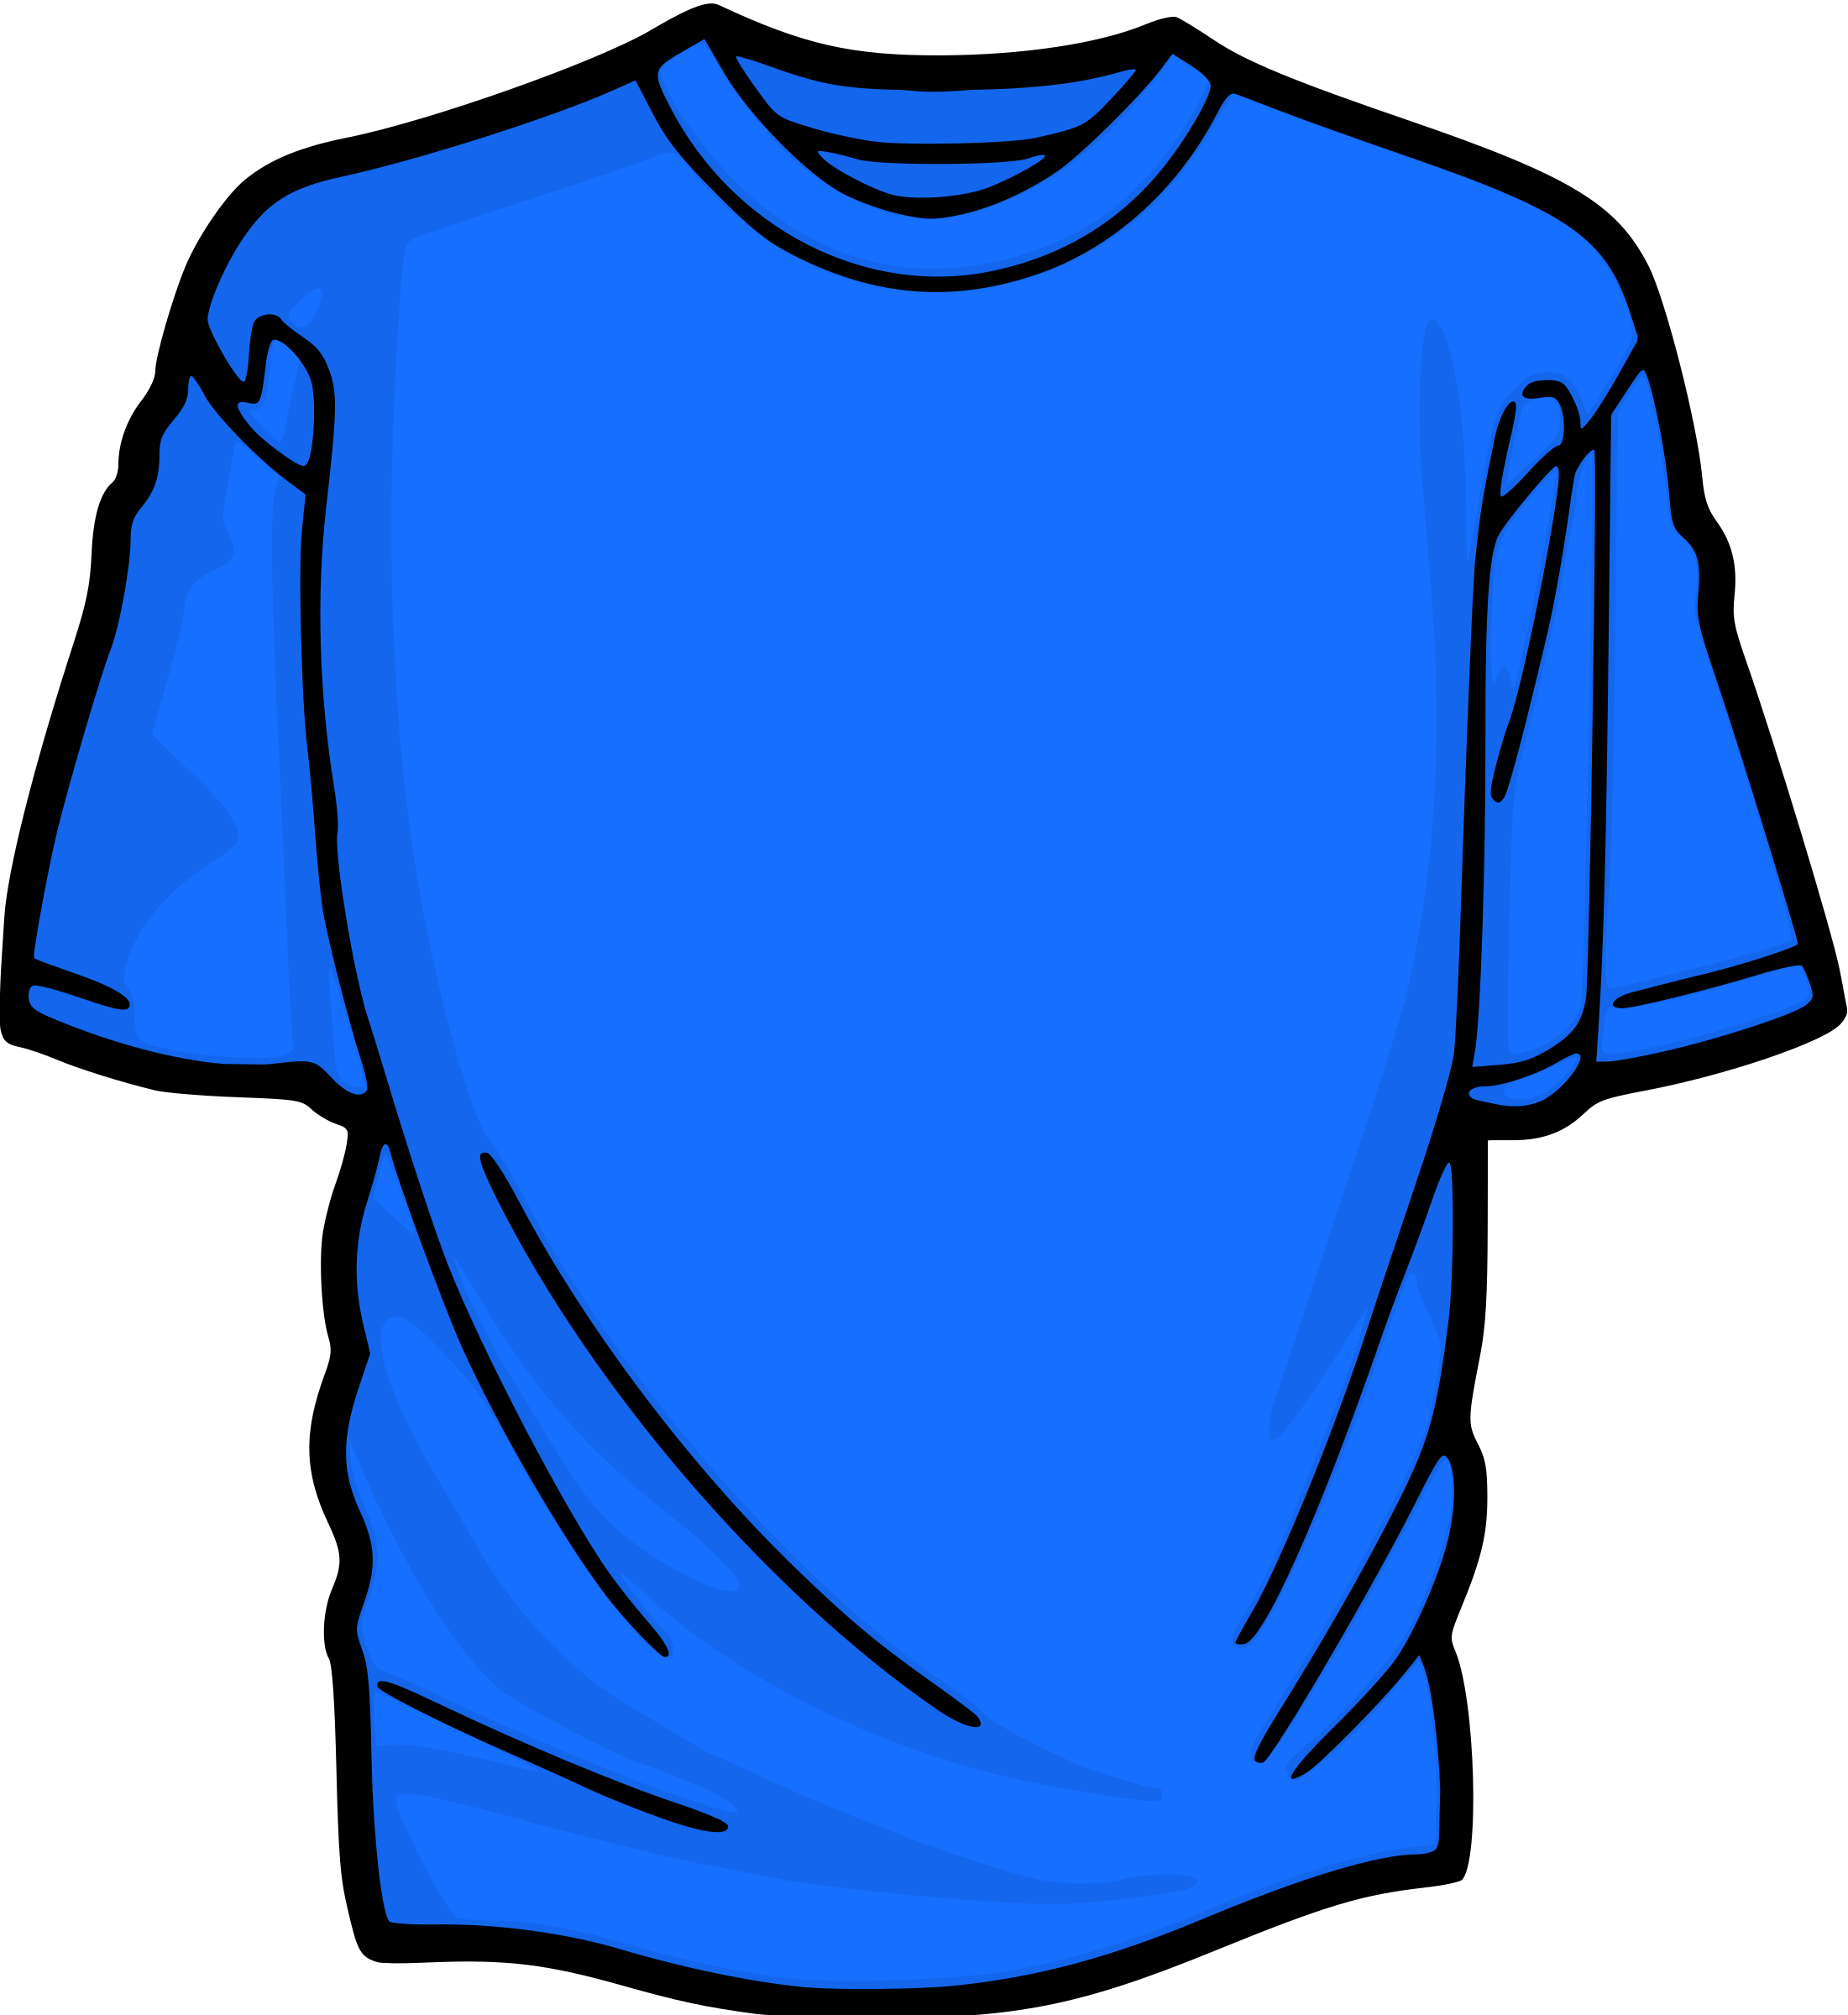 Clipart for tee shirts clipart transparent download Royalty Free Clipart For T Shirts | Azərbaycan Dillər Universiteti clipart transparent download